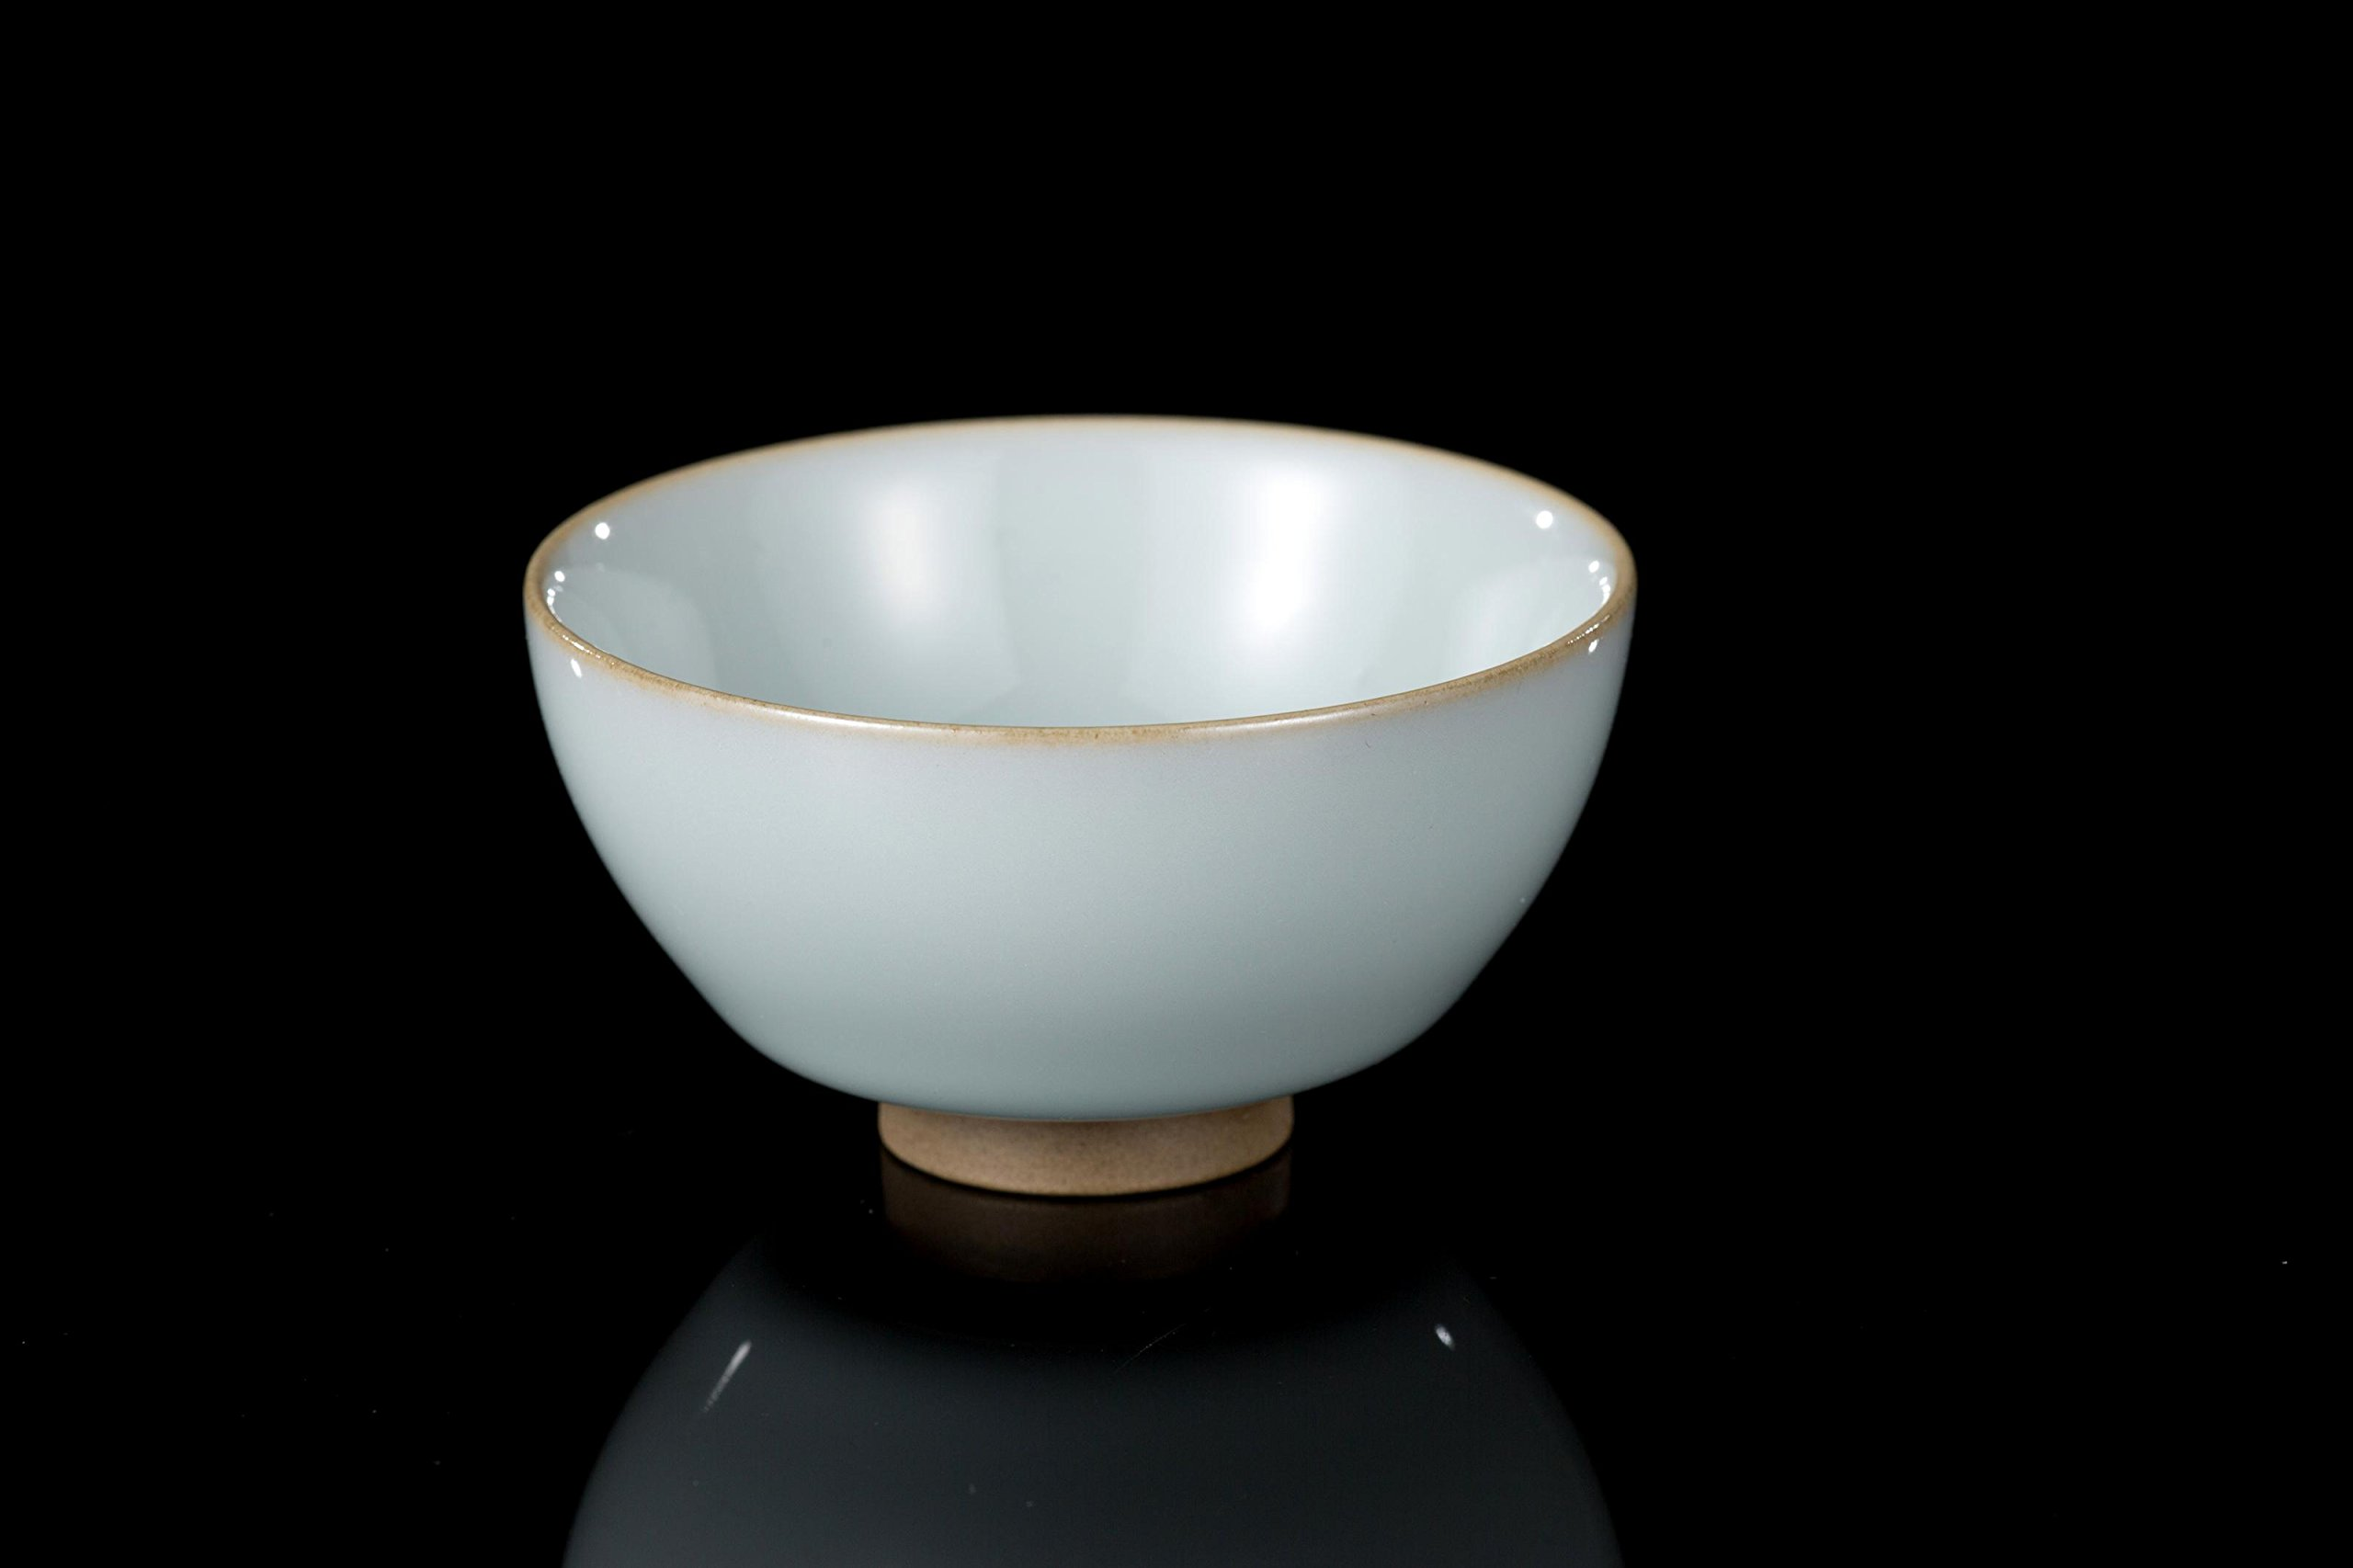 Guan Ci Wood Fired Chinese Porcelain Tea Cup (Model 2)